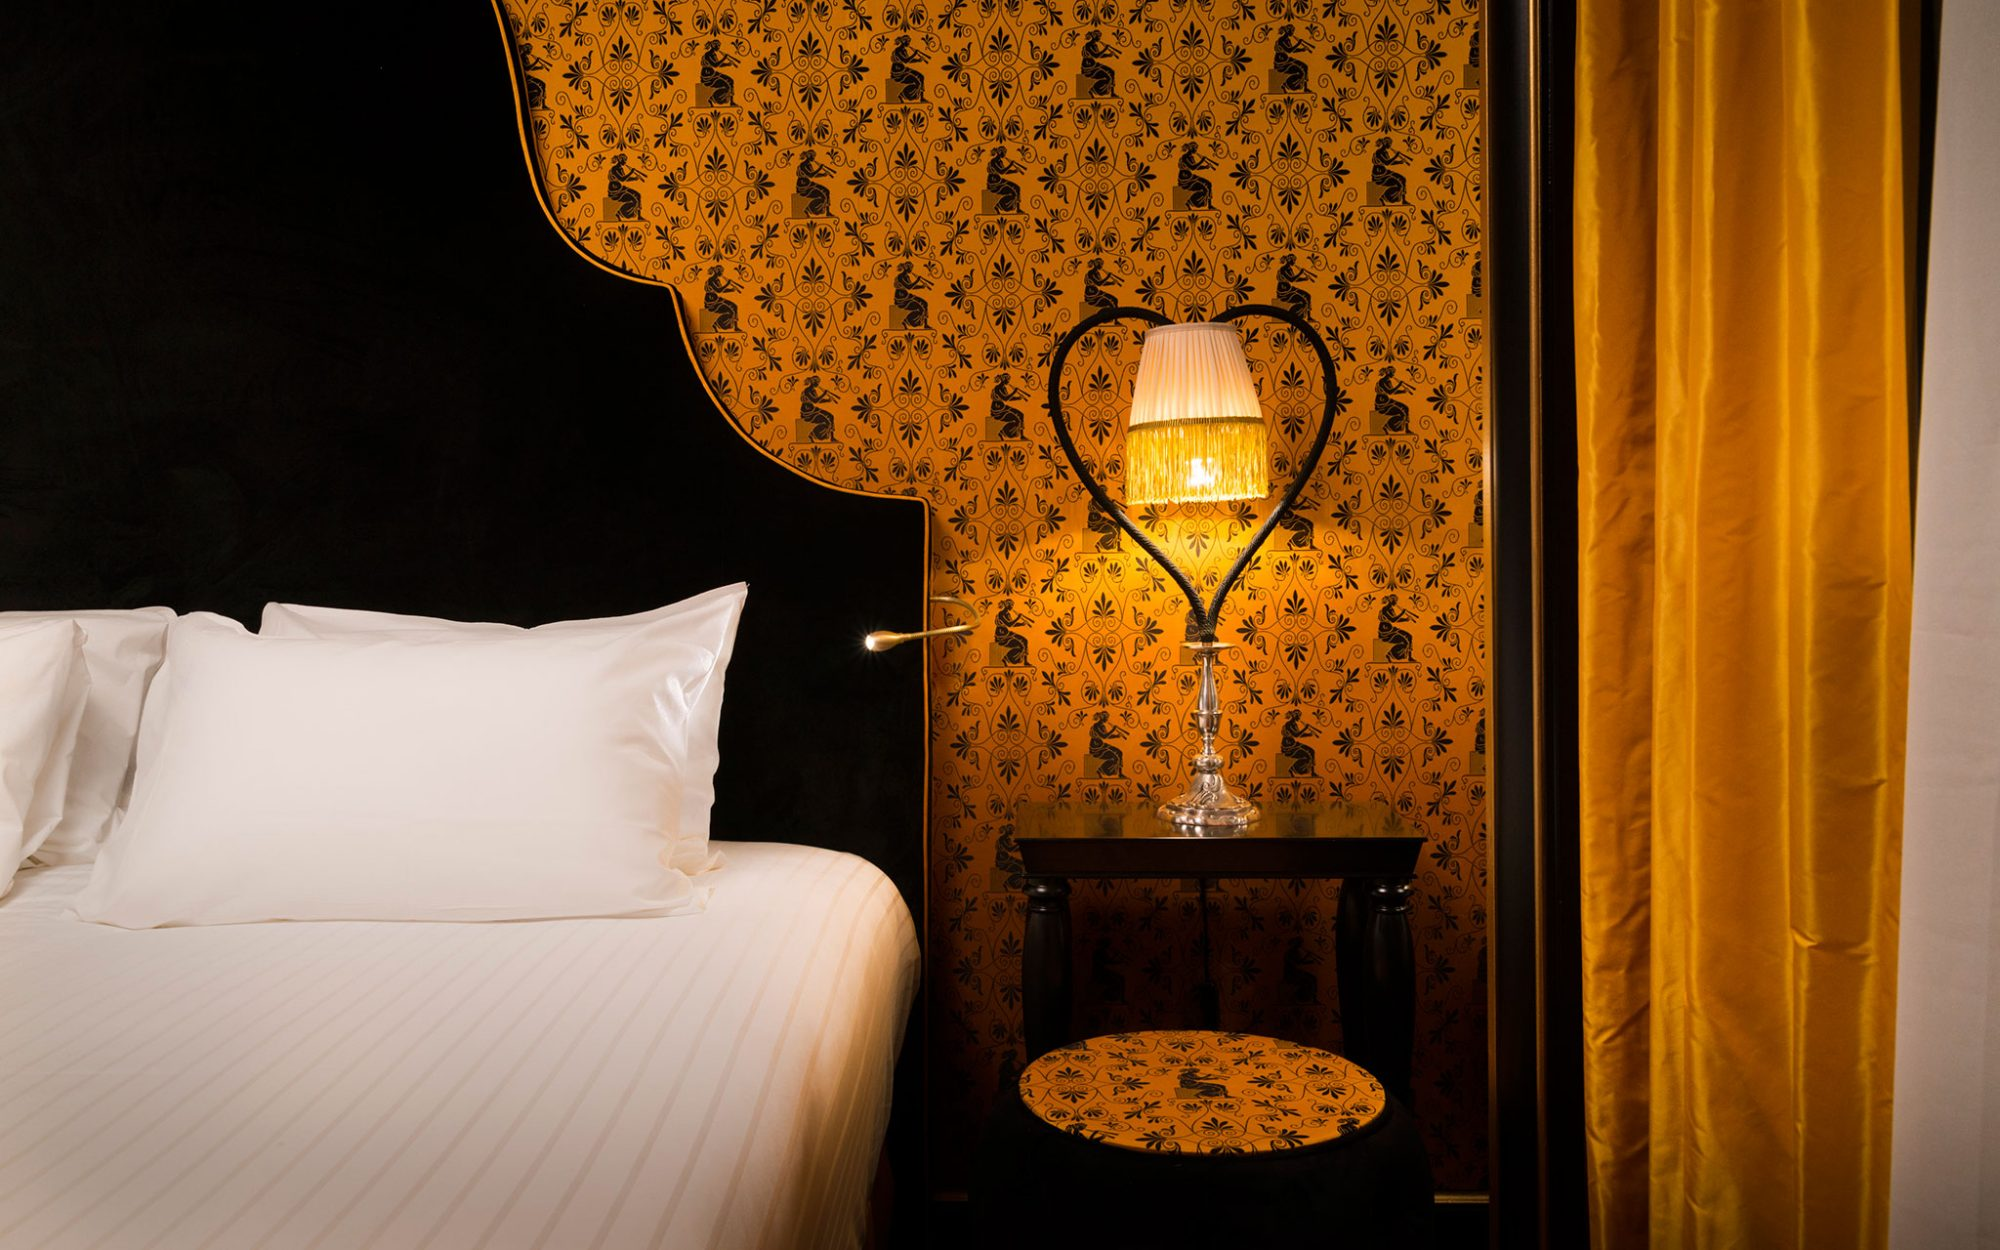 New to Paris: a Vampy Hotel With Design Steeped in Sex: La Paiva apartment